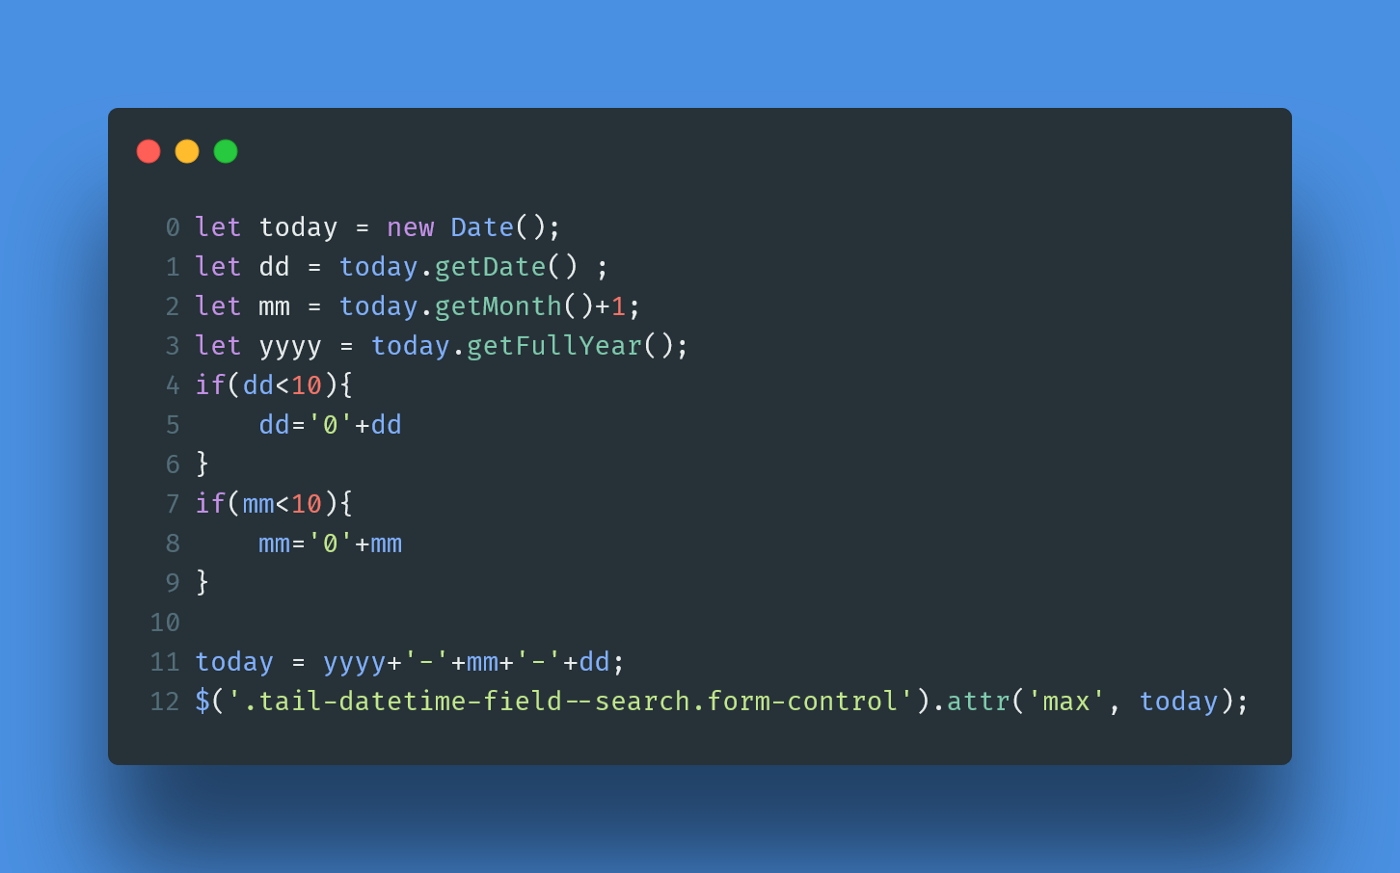 Set Tomorrow Date as a max attribute in HTML